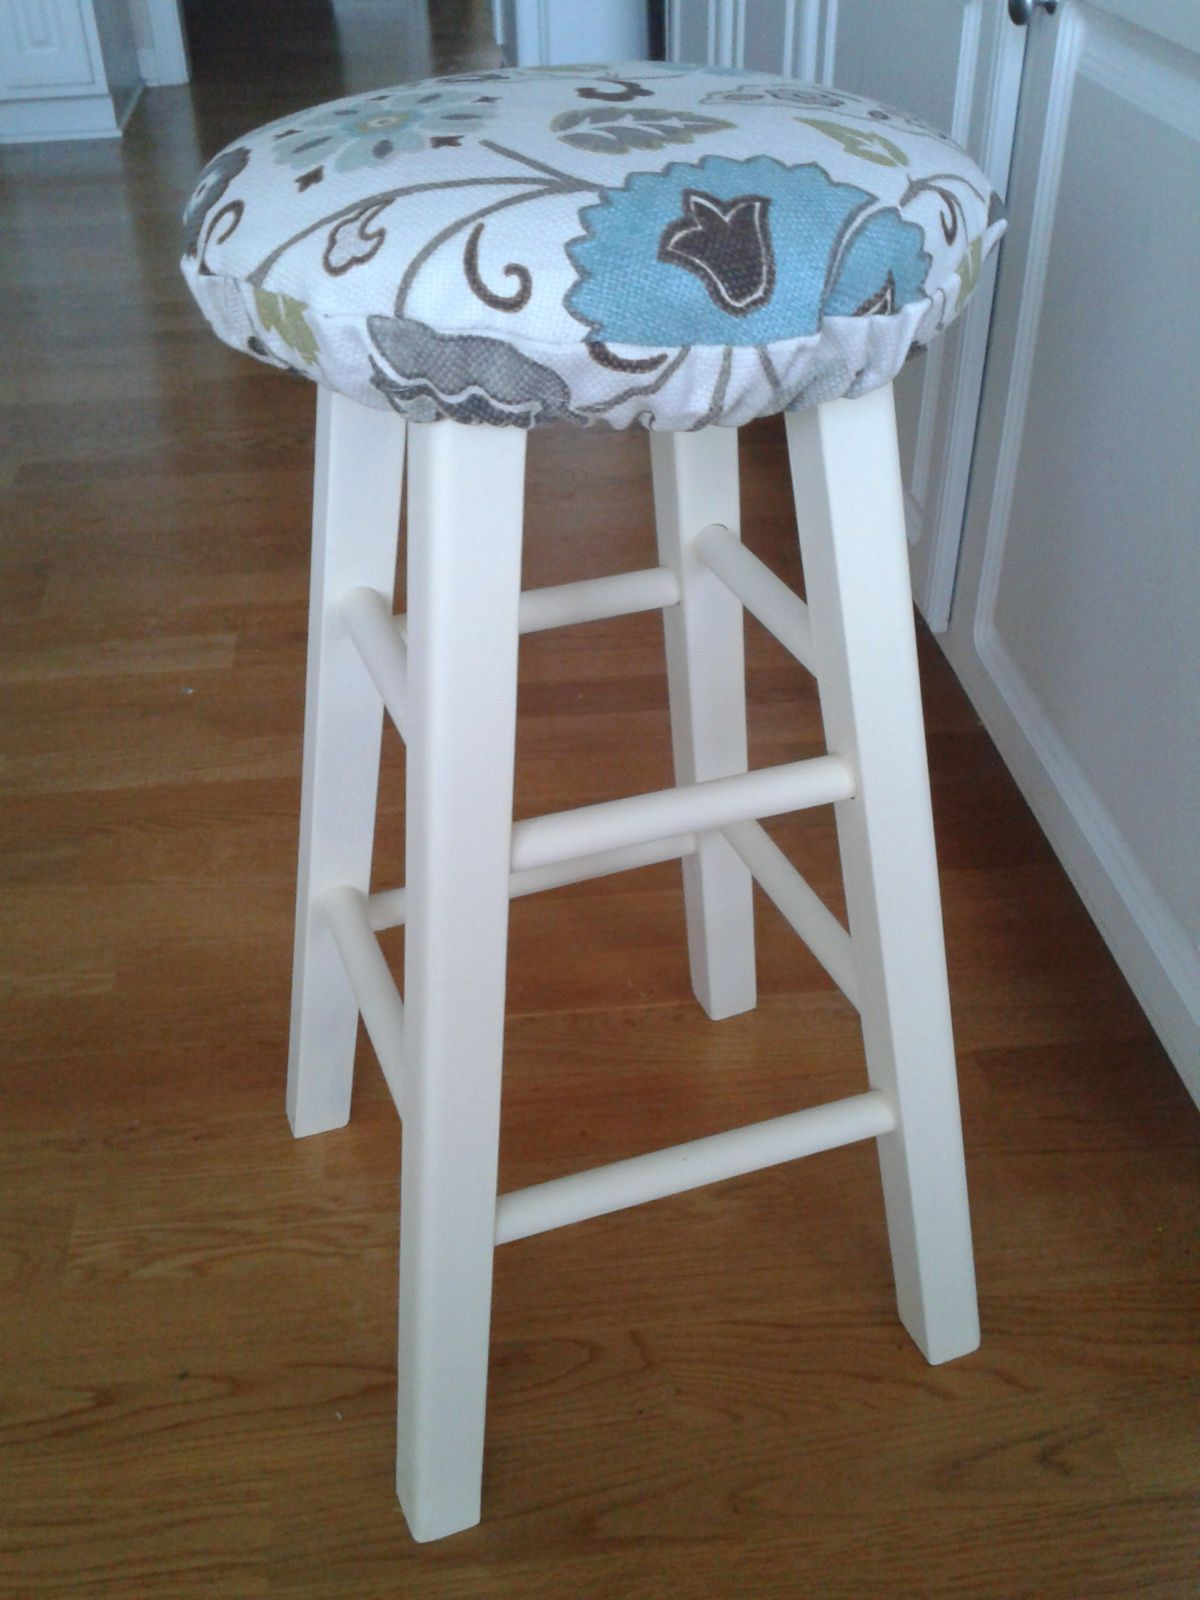 DIY Stool Cushion - Use for Breakfast Bar Stools | nxt projects ...